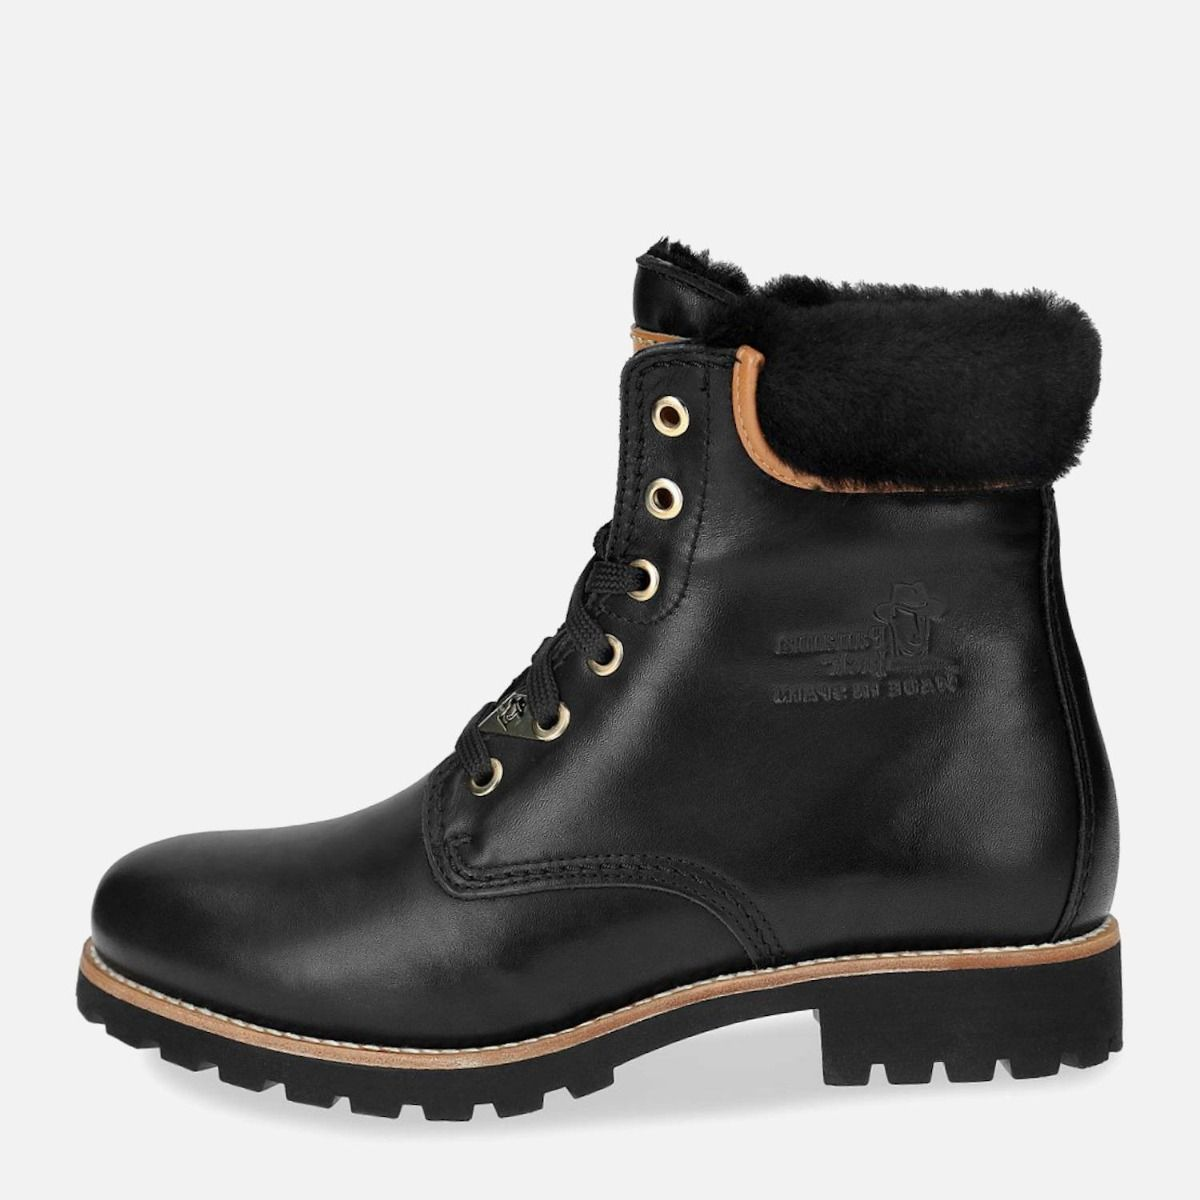 order 100% top quality fashion Panama Jack 03 Igloo Travelling Boots in Black Leather